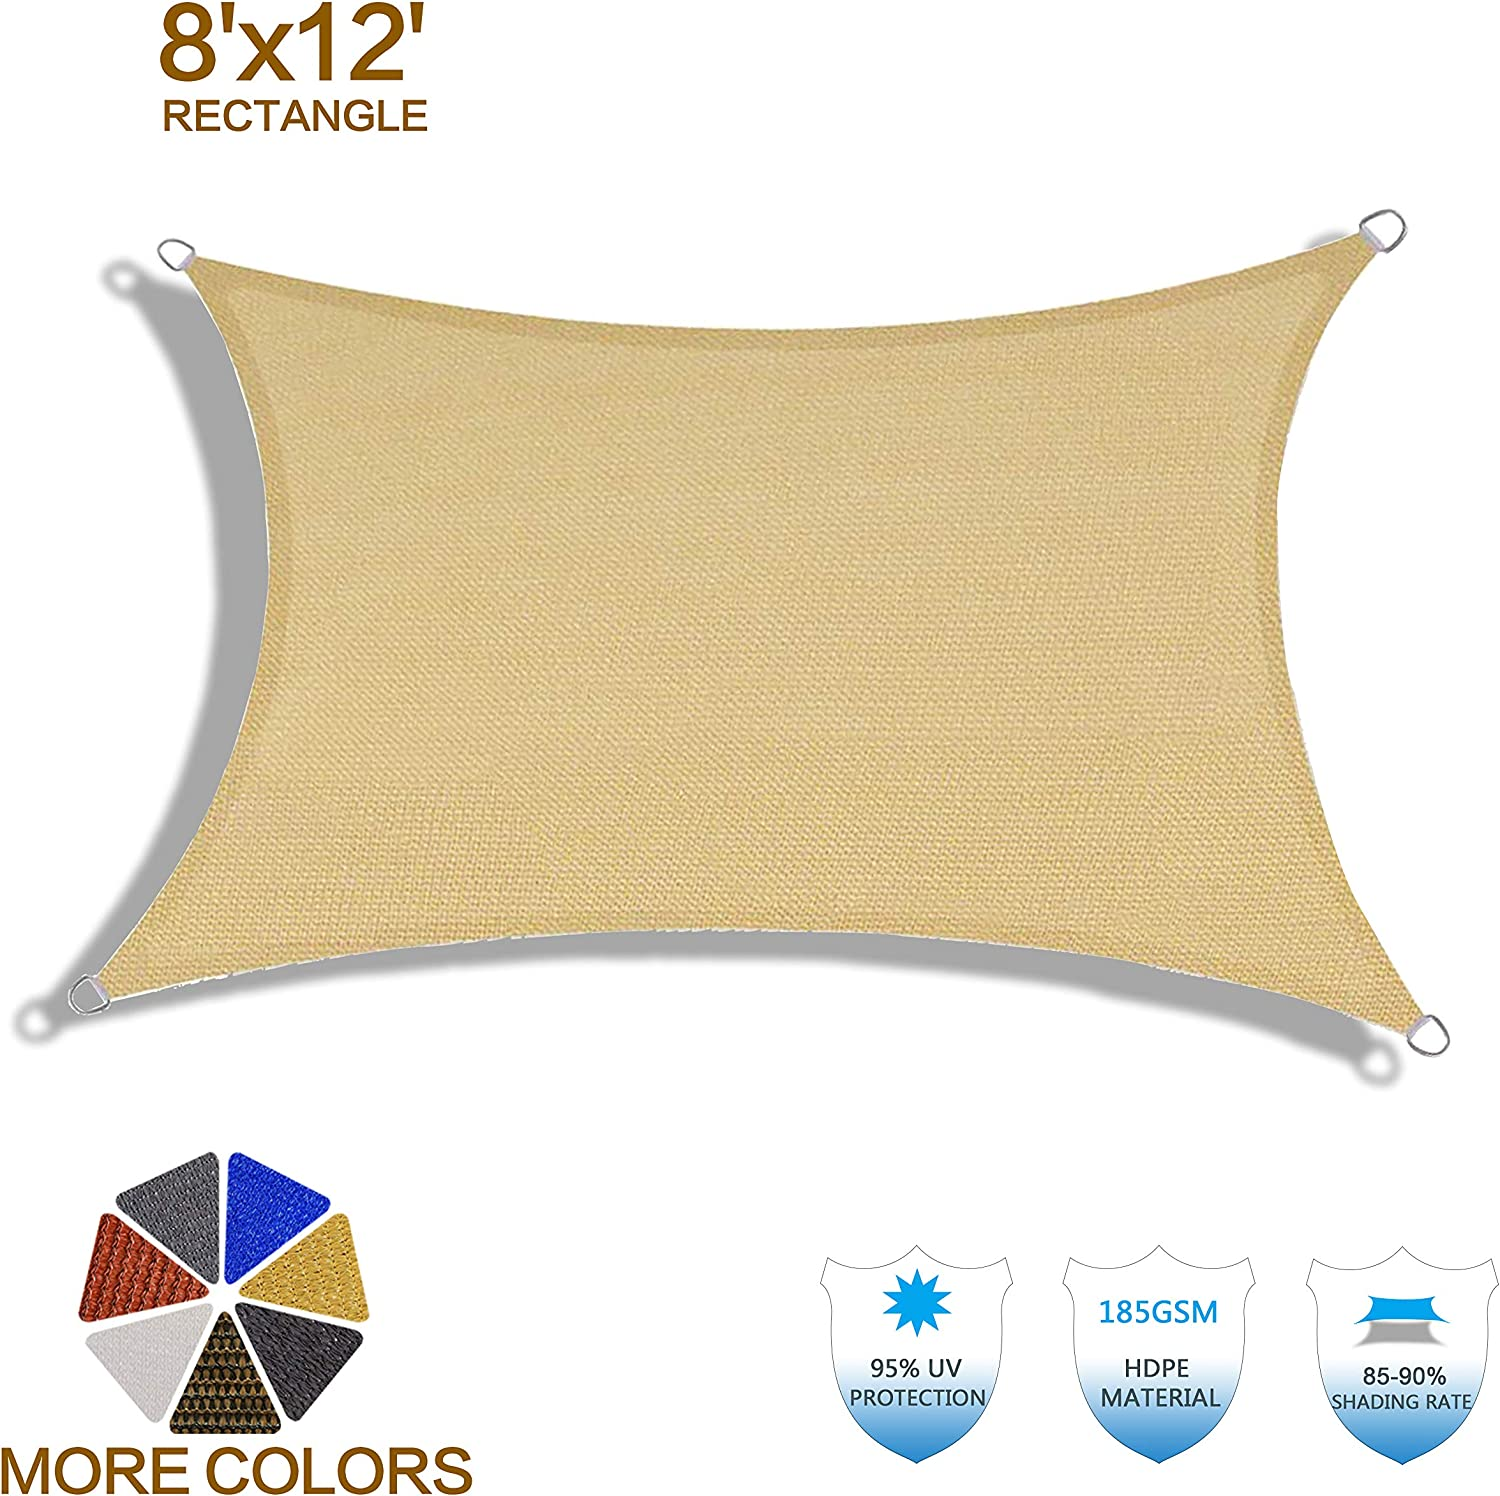 HENG FENG 8'x12' Sand Rectangle Sun Shade Sail UV Block for Patio Deck Yard and Outdoor